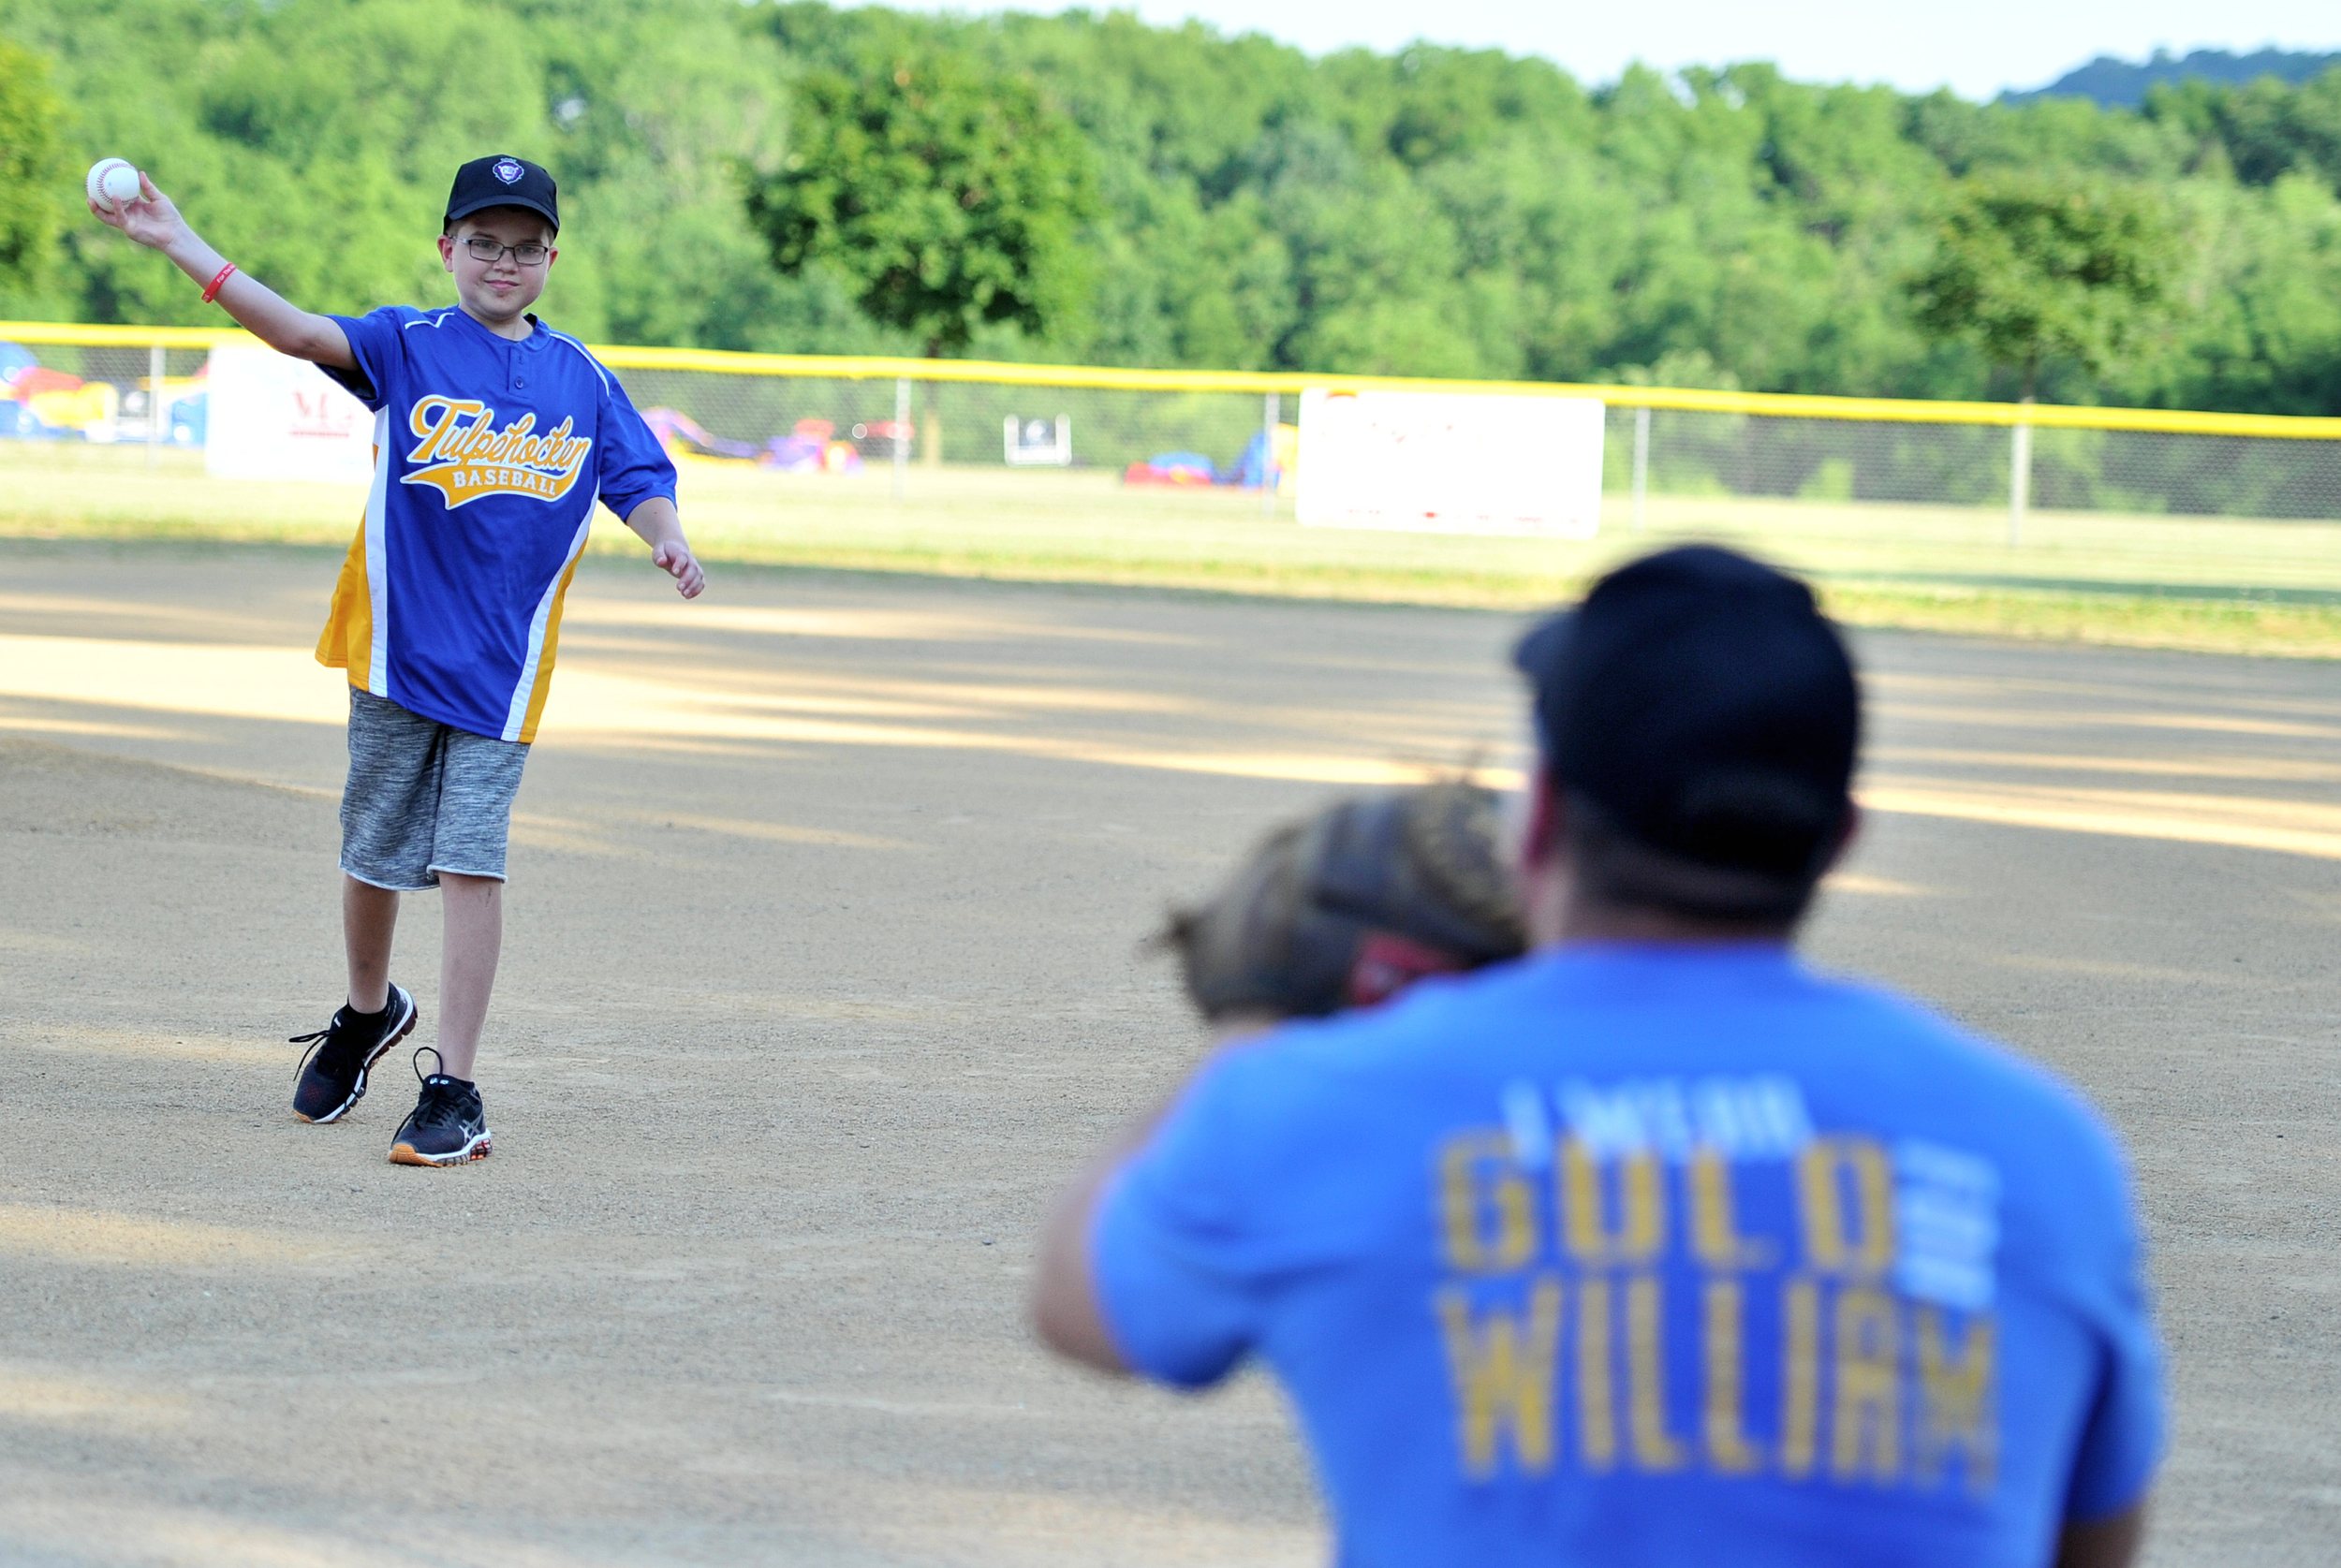 Caption/Description: William Dieffenbach, 11, of Womelsdorf throws the first pitch of the game to his father Nevin Dieffenbach at the Strike Out Cancer event in Bernville, PA, on June 19, 2016. William is battling brain cancer, and the event was held to raise money for cancer research. (Reading Eagle: Sarah Stier)